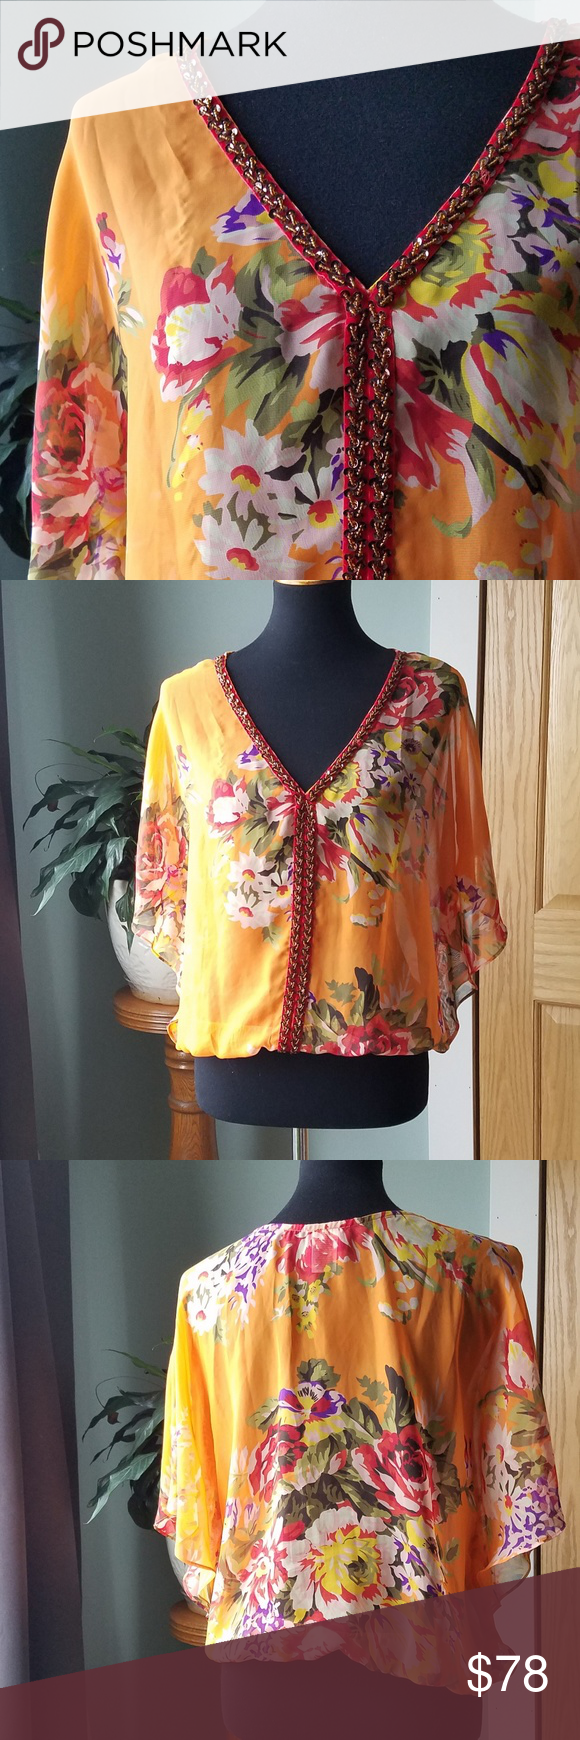 044dca673c1 Free People Sheer Genius Free People Sheer Genius Blouse, size S. Vibrant  flower pattern